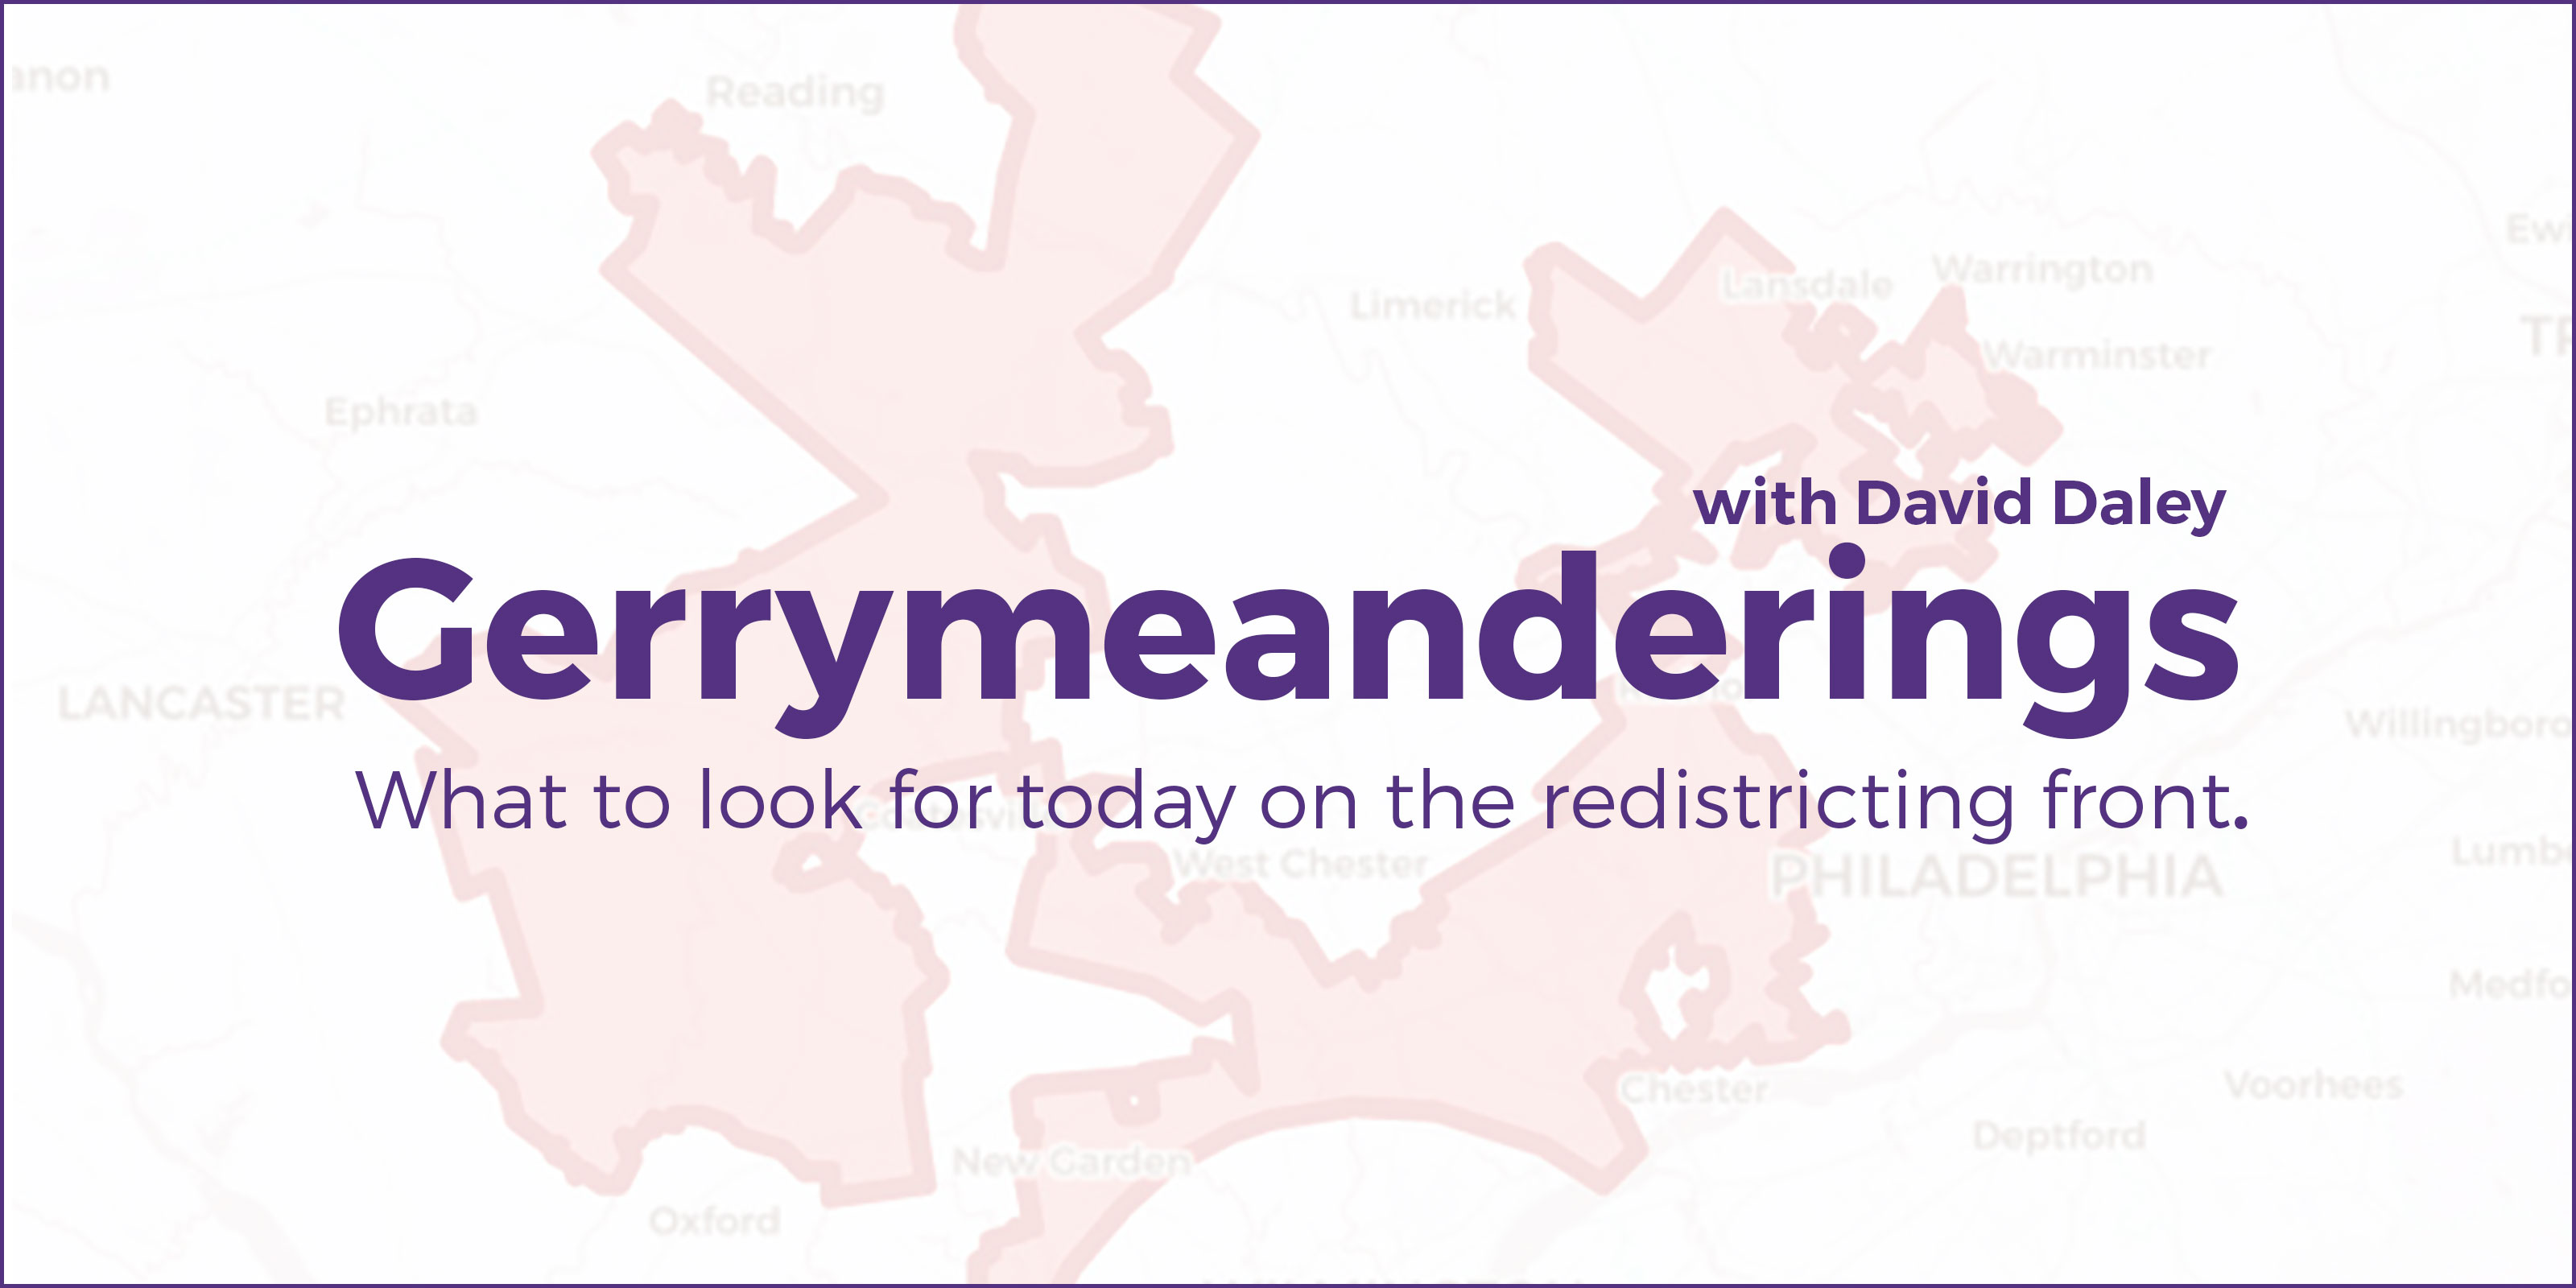 RIP partisan gerrymandering? State and federal courts deliver harsh blows